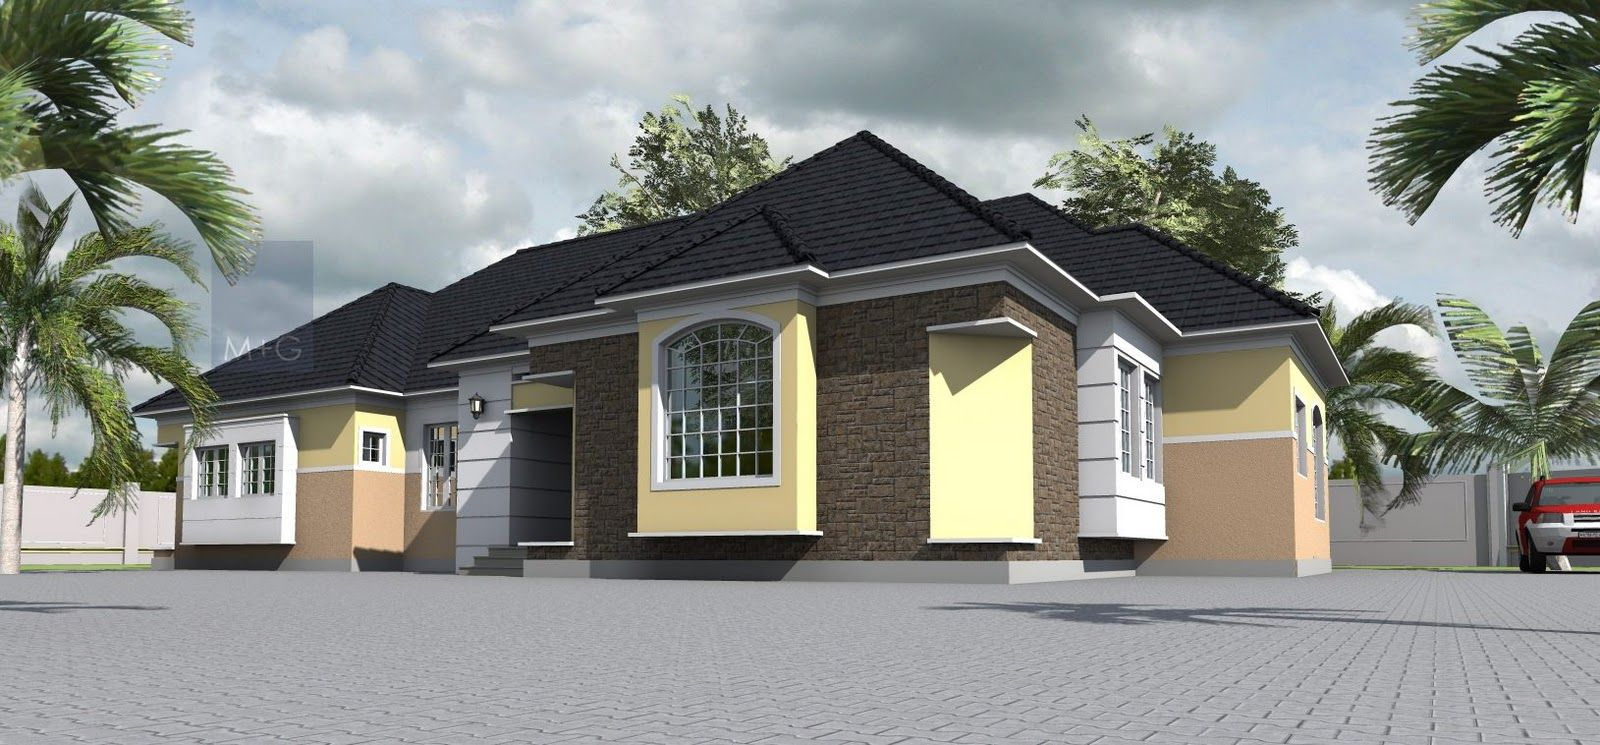 Small two story house plans with contemporary nigerian residential architecture 4 bedroom bungalow